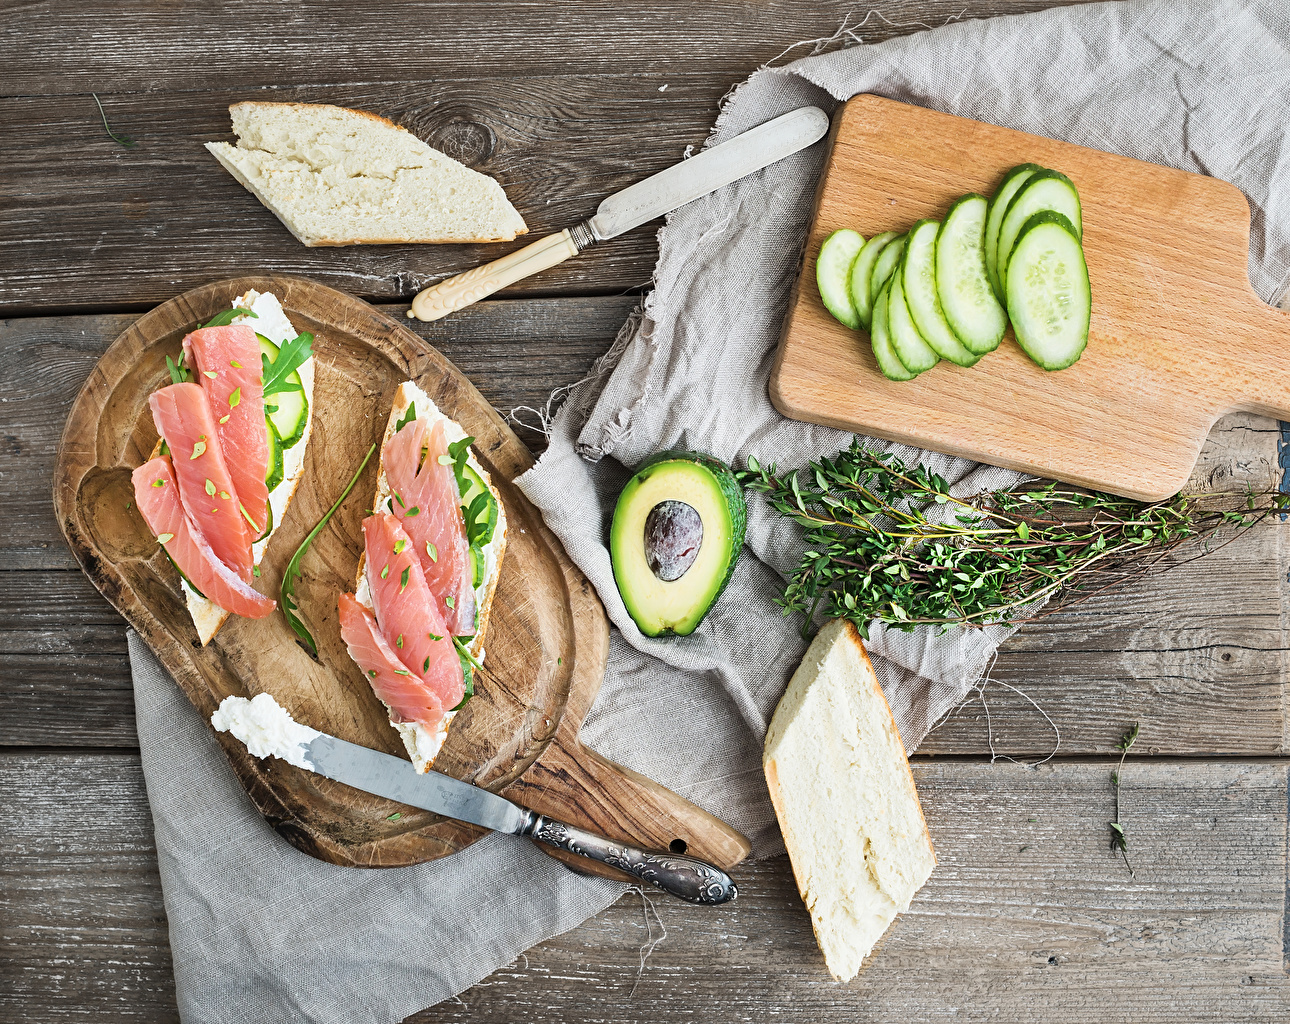 Photos Knife Cucumbers Bread Avocado Butterbrot Fish - Food Food Cutting board boards Wood planks